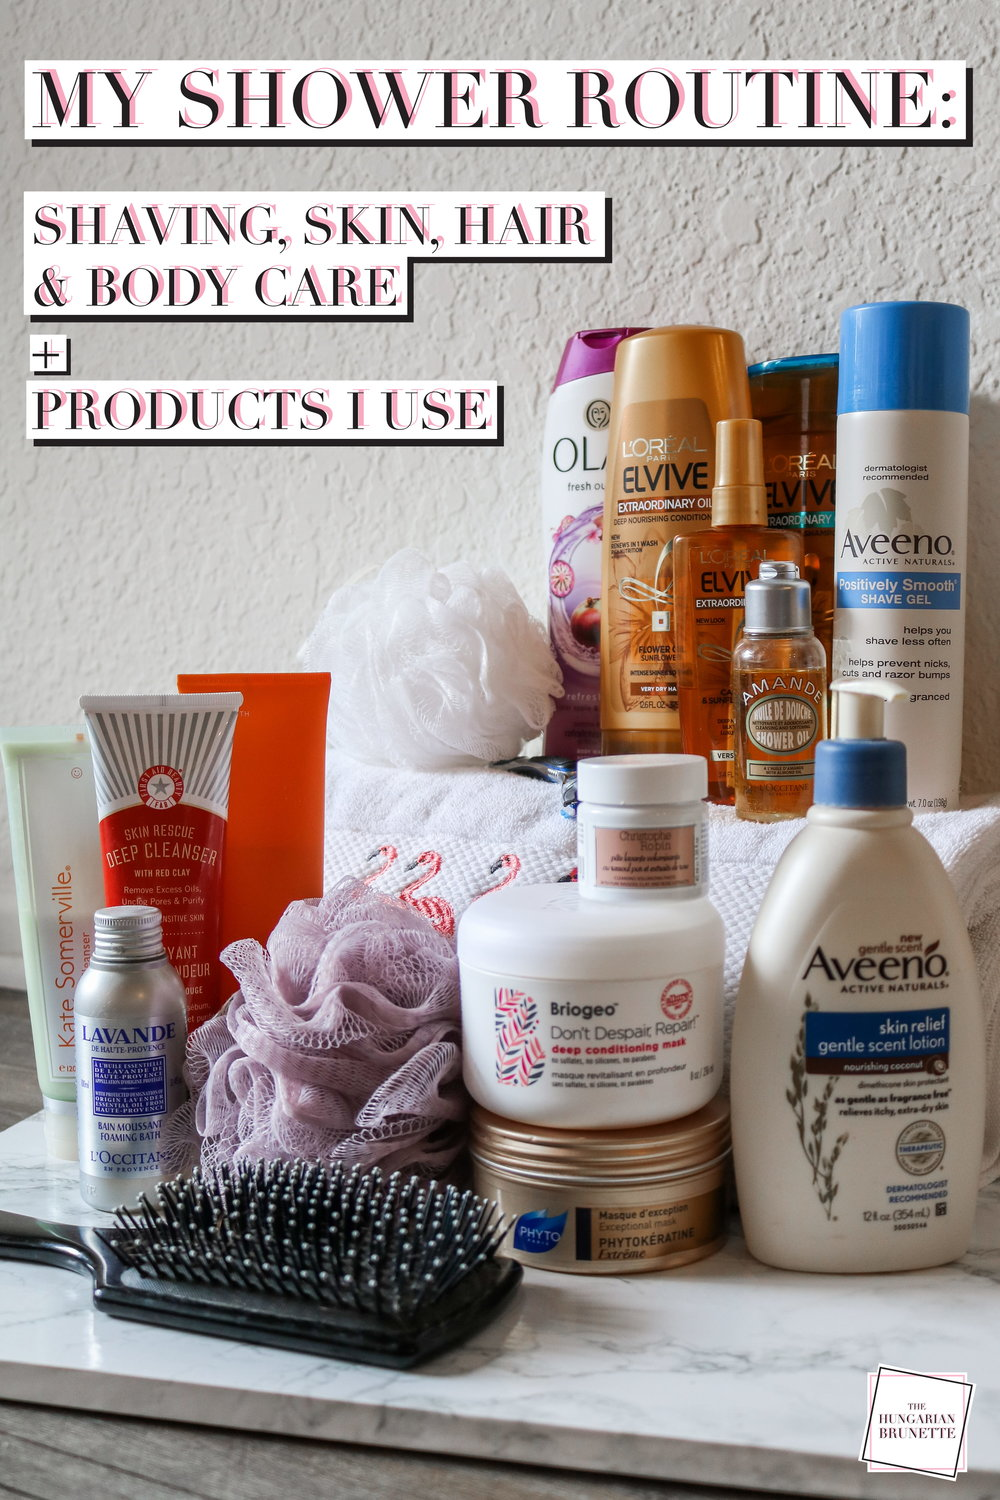 The Hungarian Brunette my shower routine - shaving, skin, hair, body care + products I use